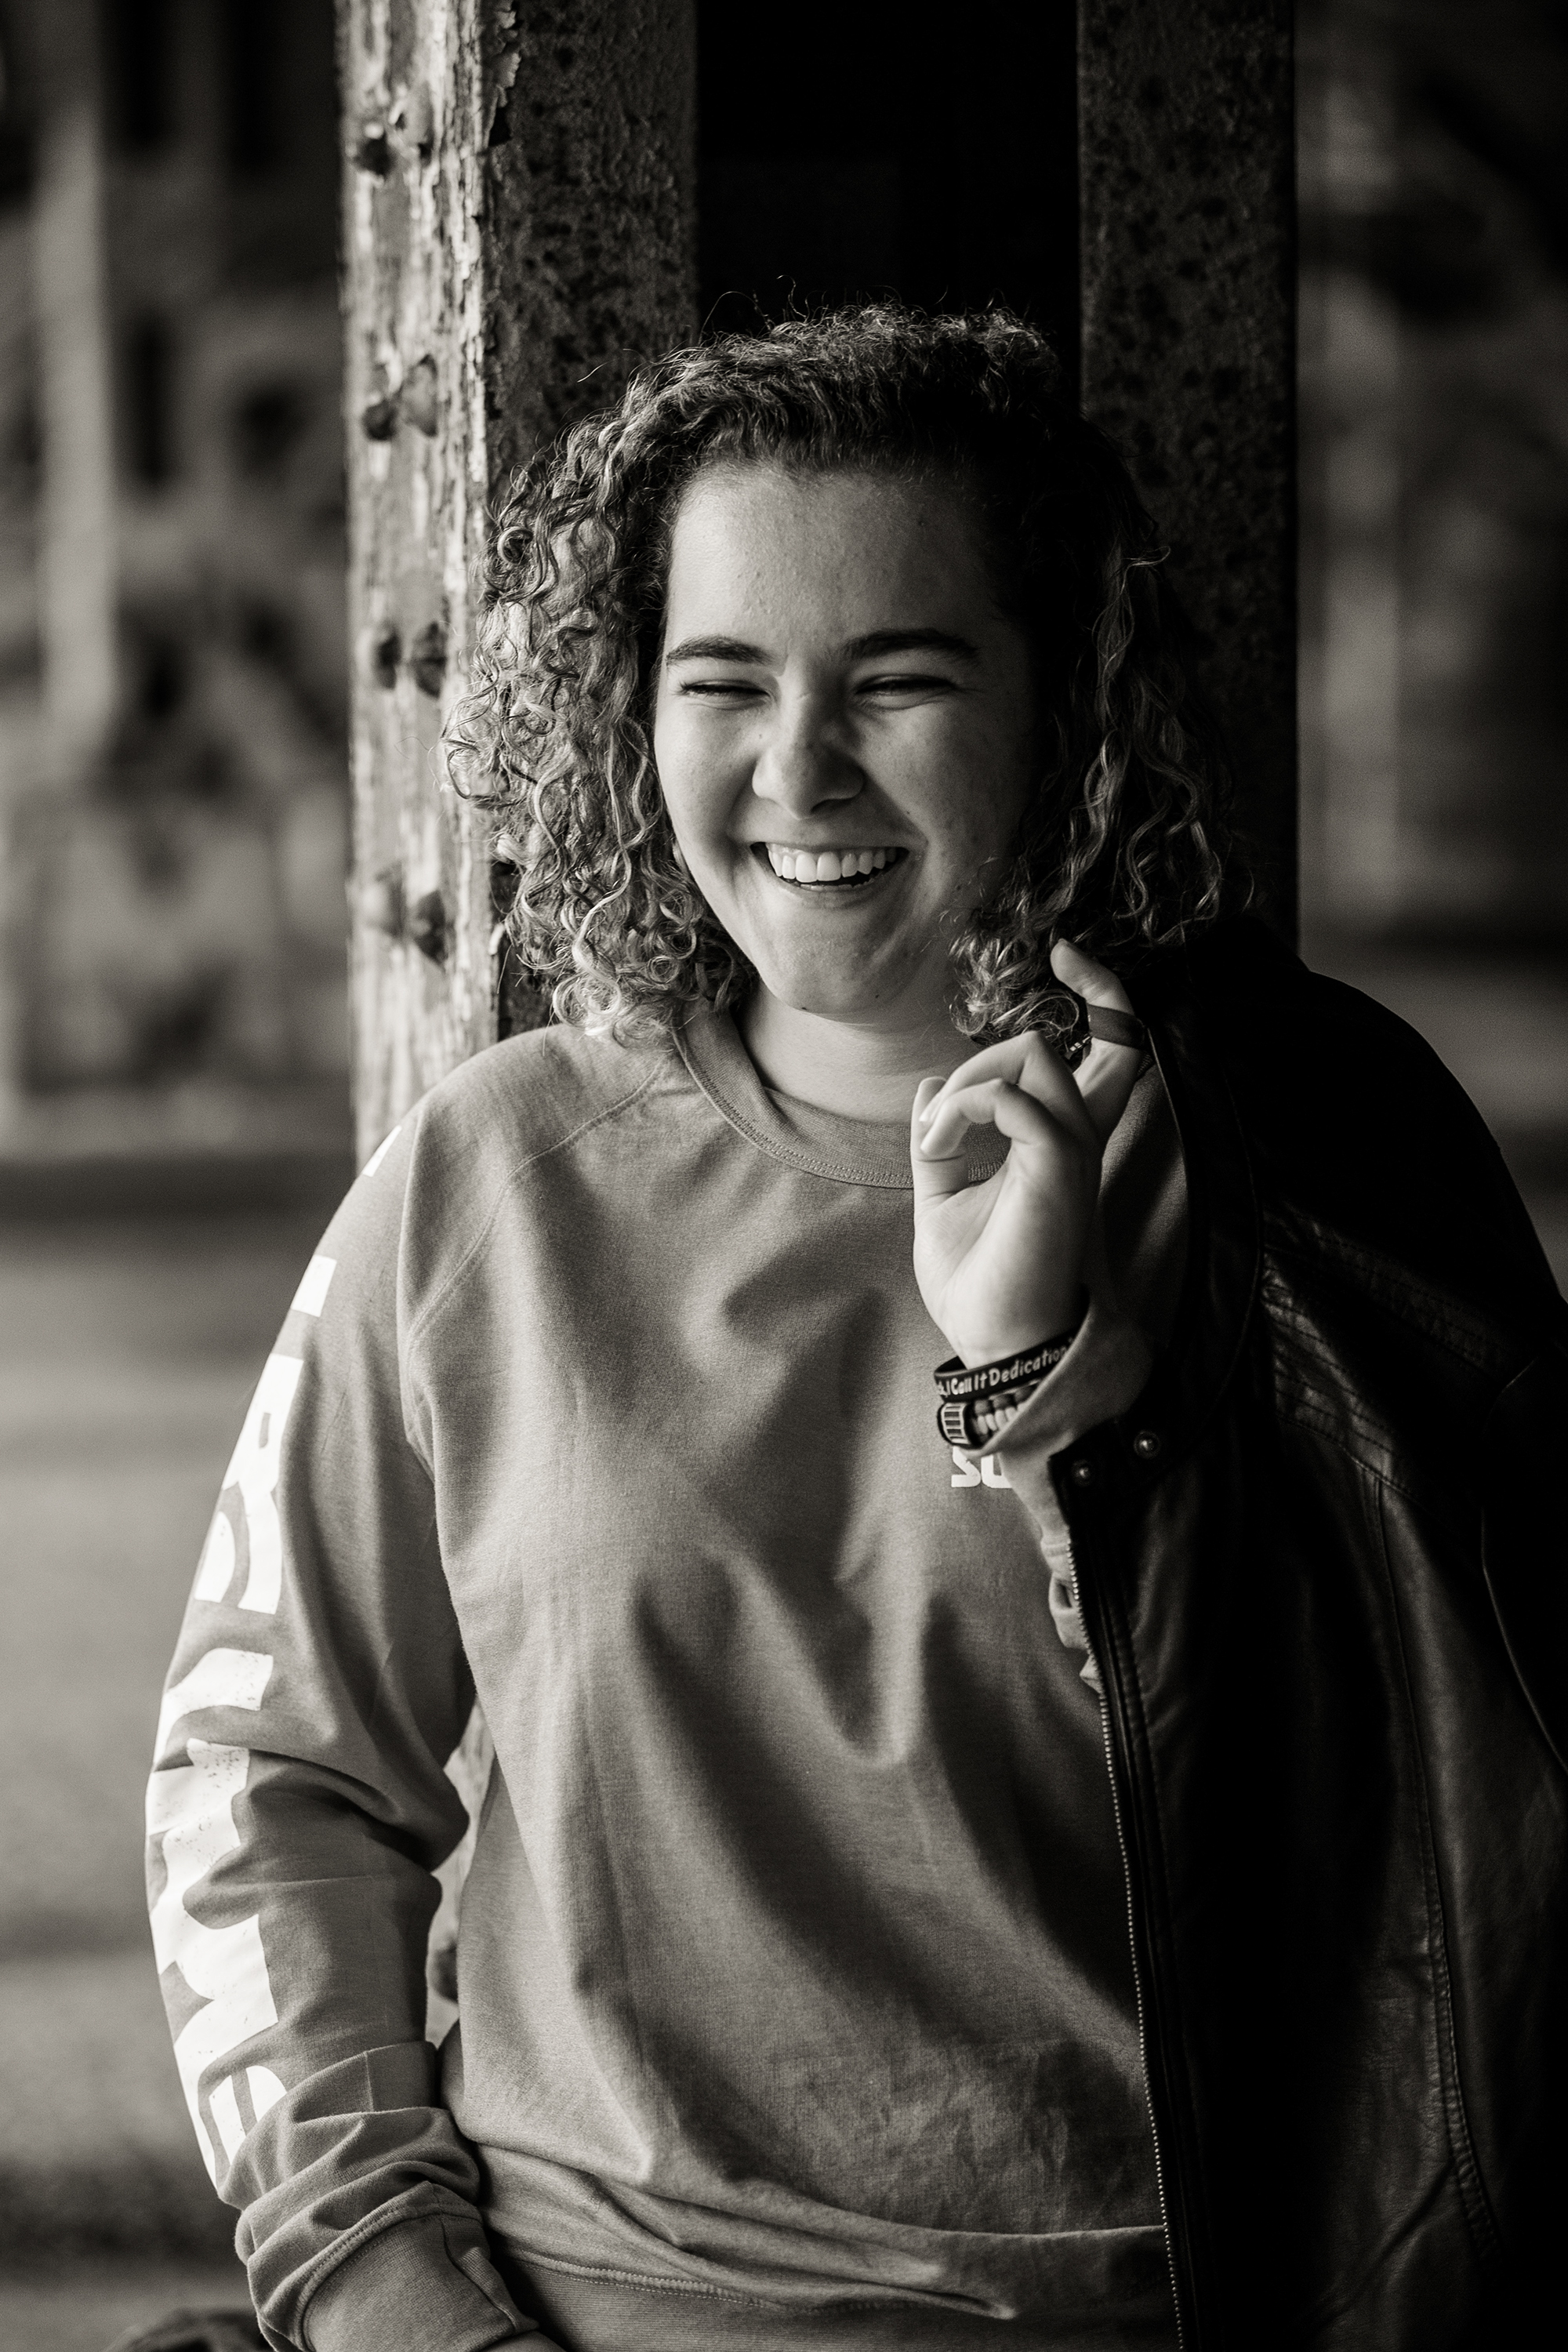 Erie senior portraits of laughing girl holding leather jacket under 14th St. underpass